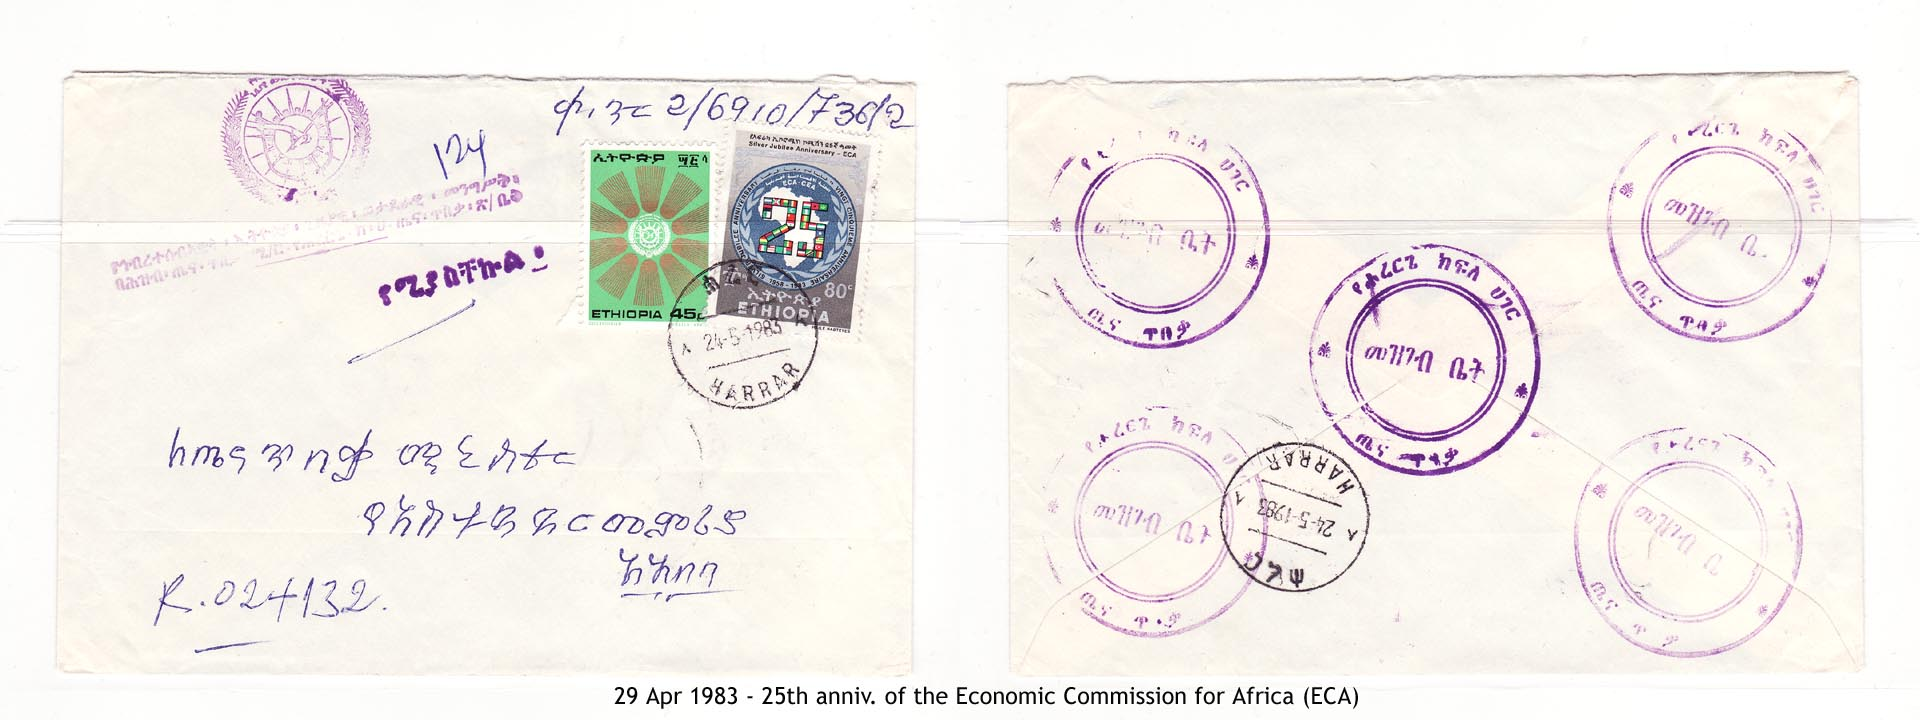 19830429 - 25th anniv. of the Economic Commission for Africa (ECA)